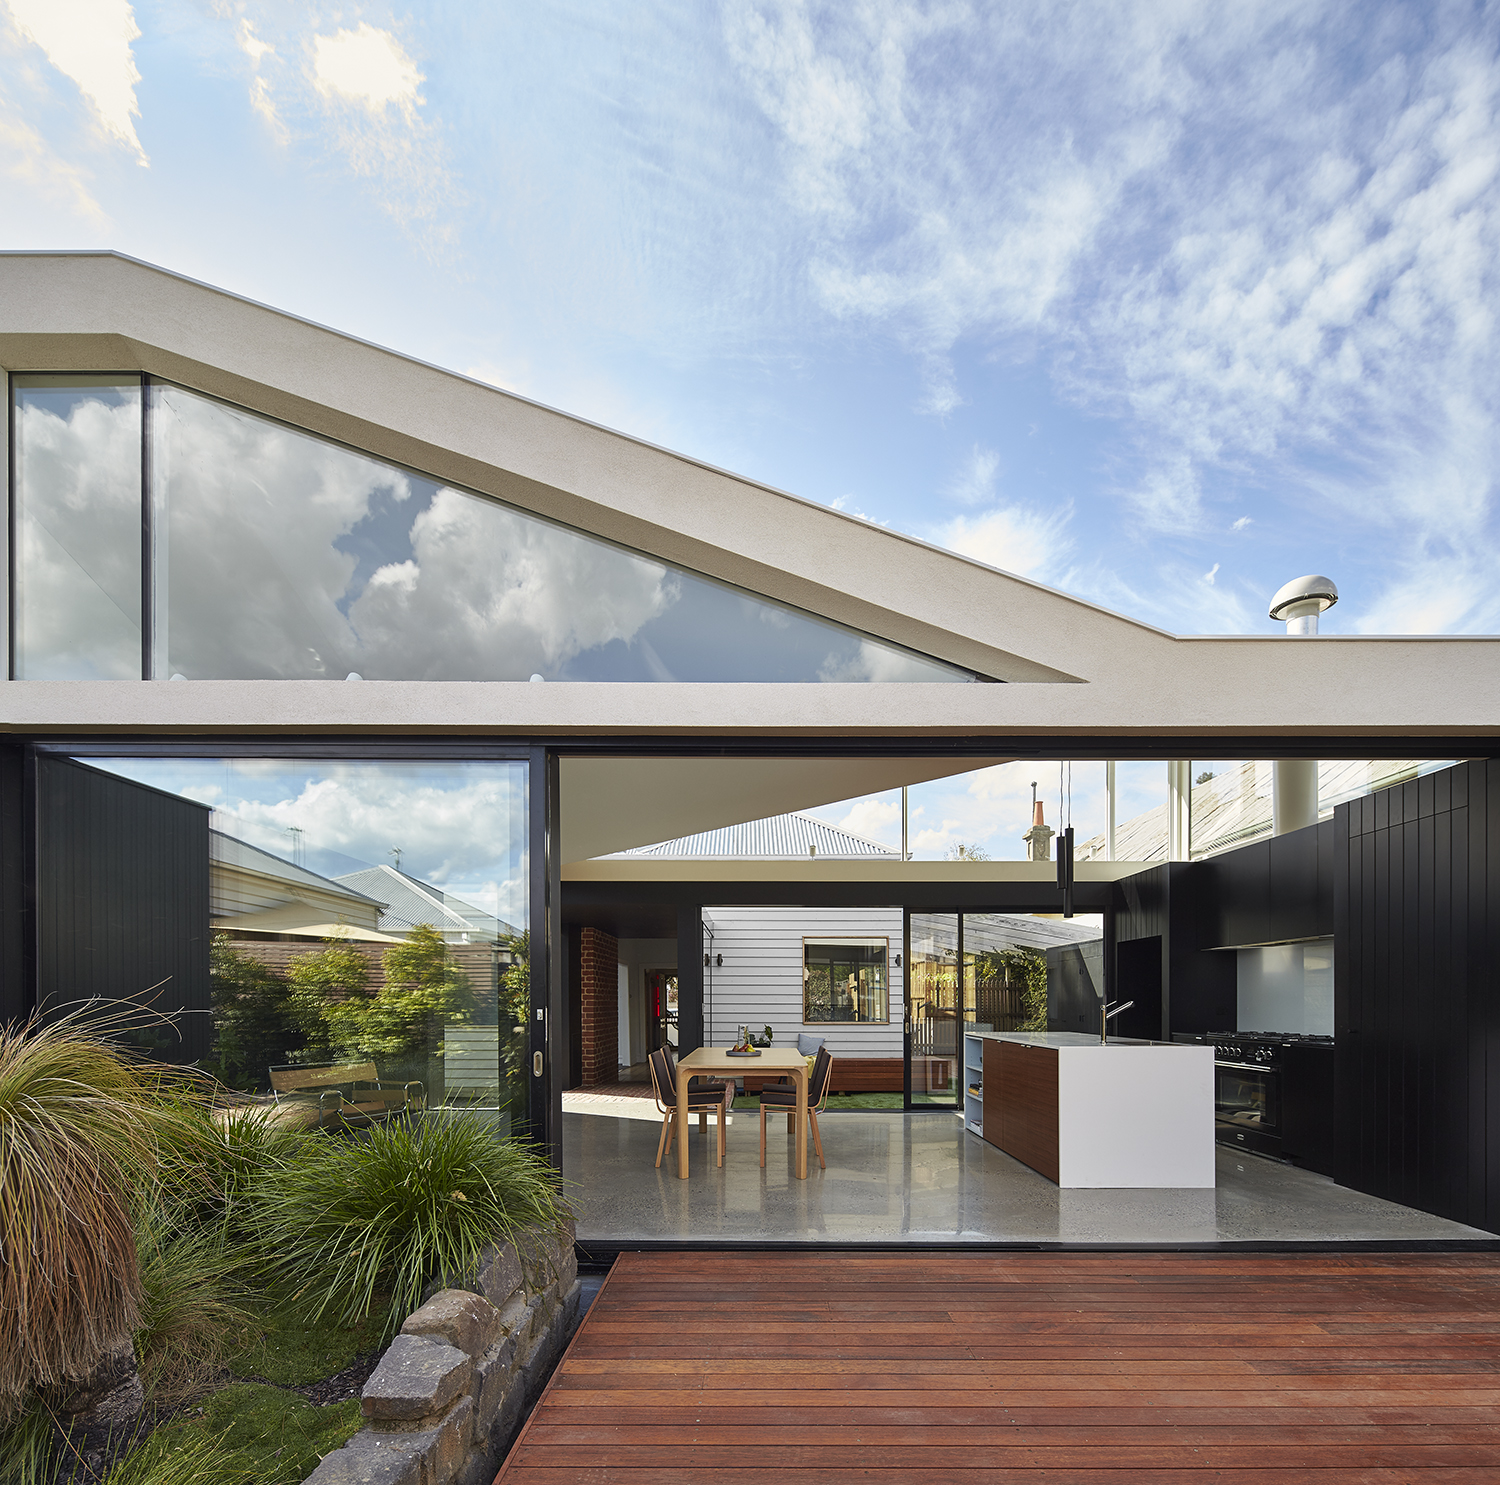 Deck of Australian addition to Edwardian home.